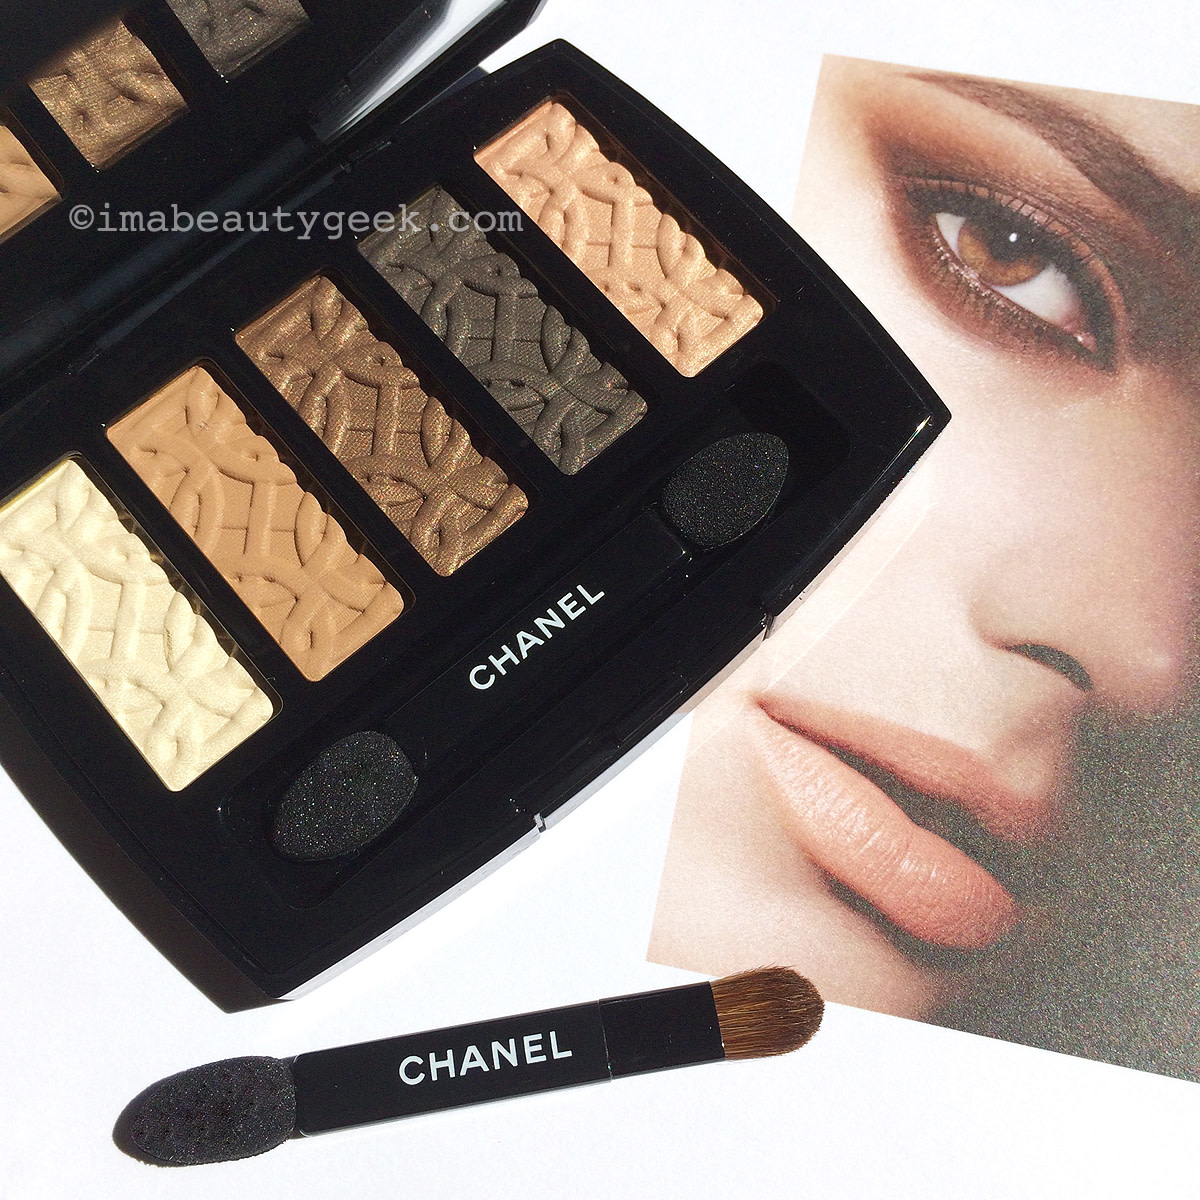 Chanel Fall 2015 Makeup Les Automnales Collection_Entrelacs eyeshadow palette